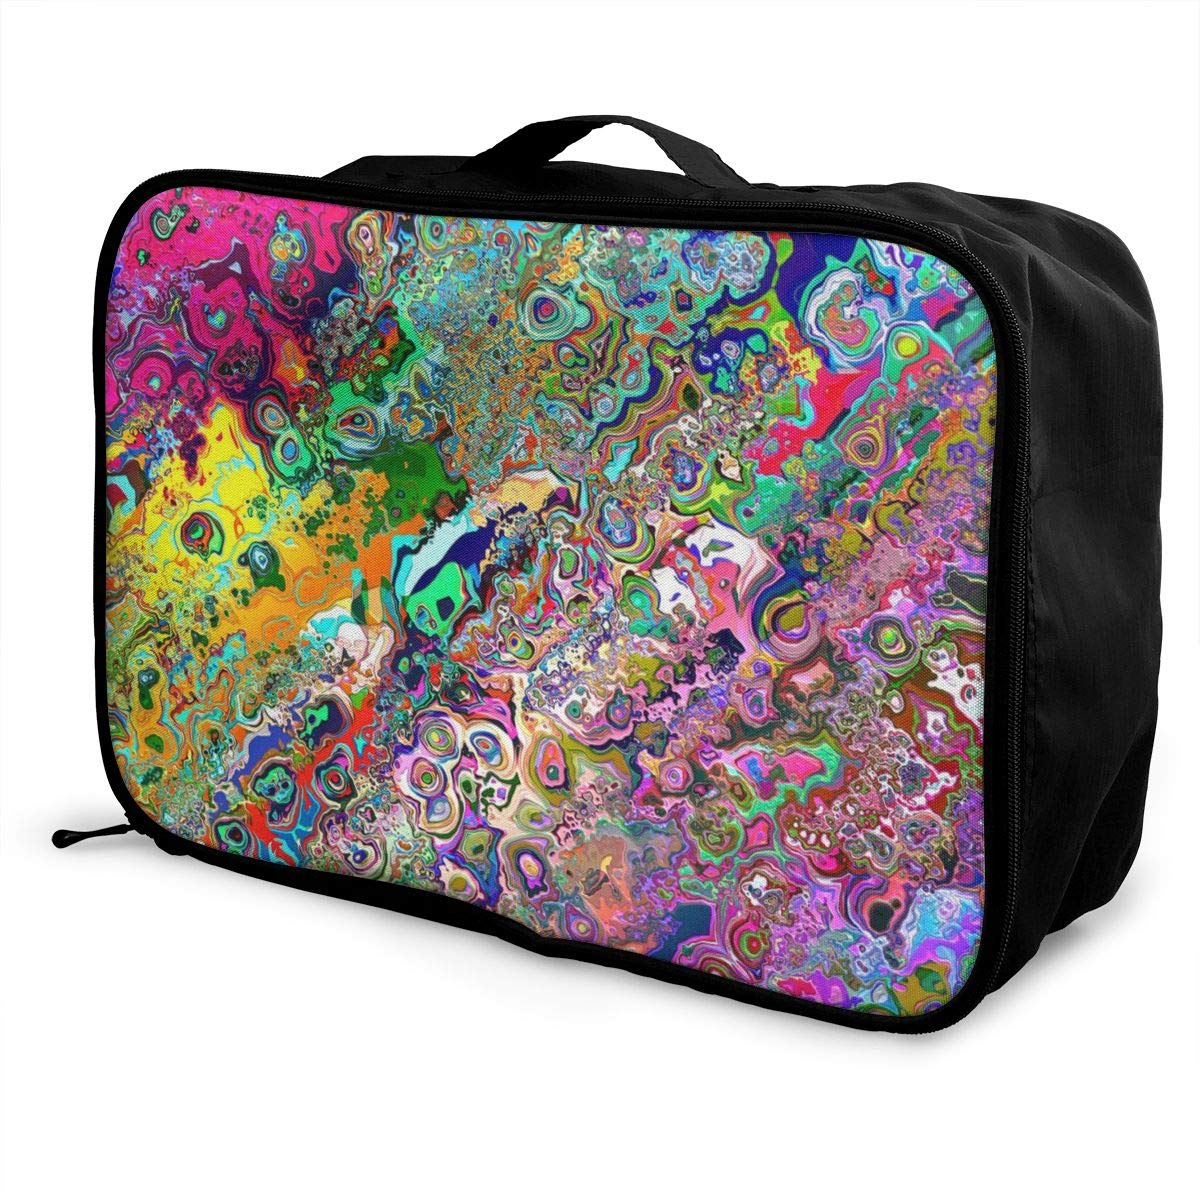 Psychedelic Tripple Travel Duffel Bag Casual Large Capacity Portable Luggage Bag Suitcase Storage Bag Luggage Packing Tote Bag Weekend Trip